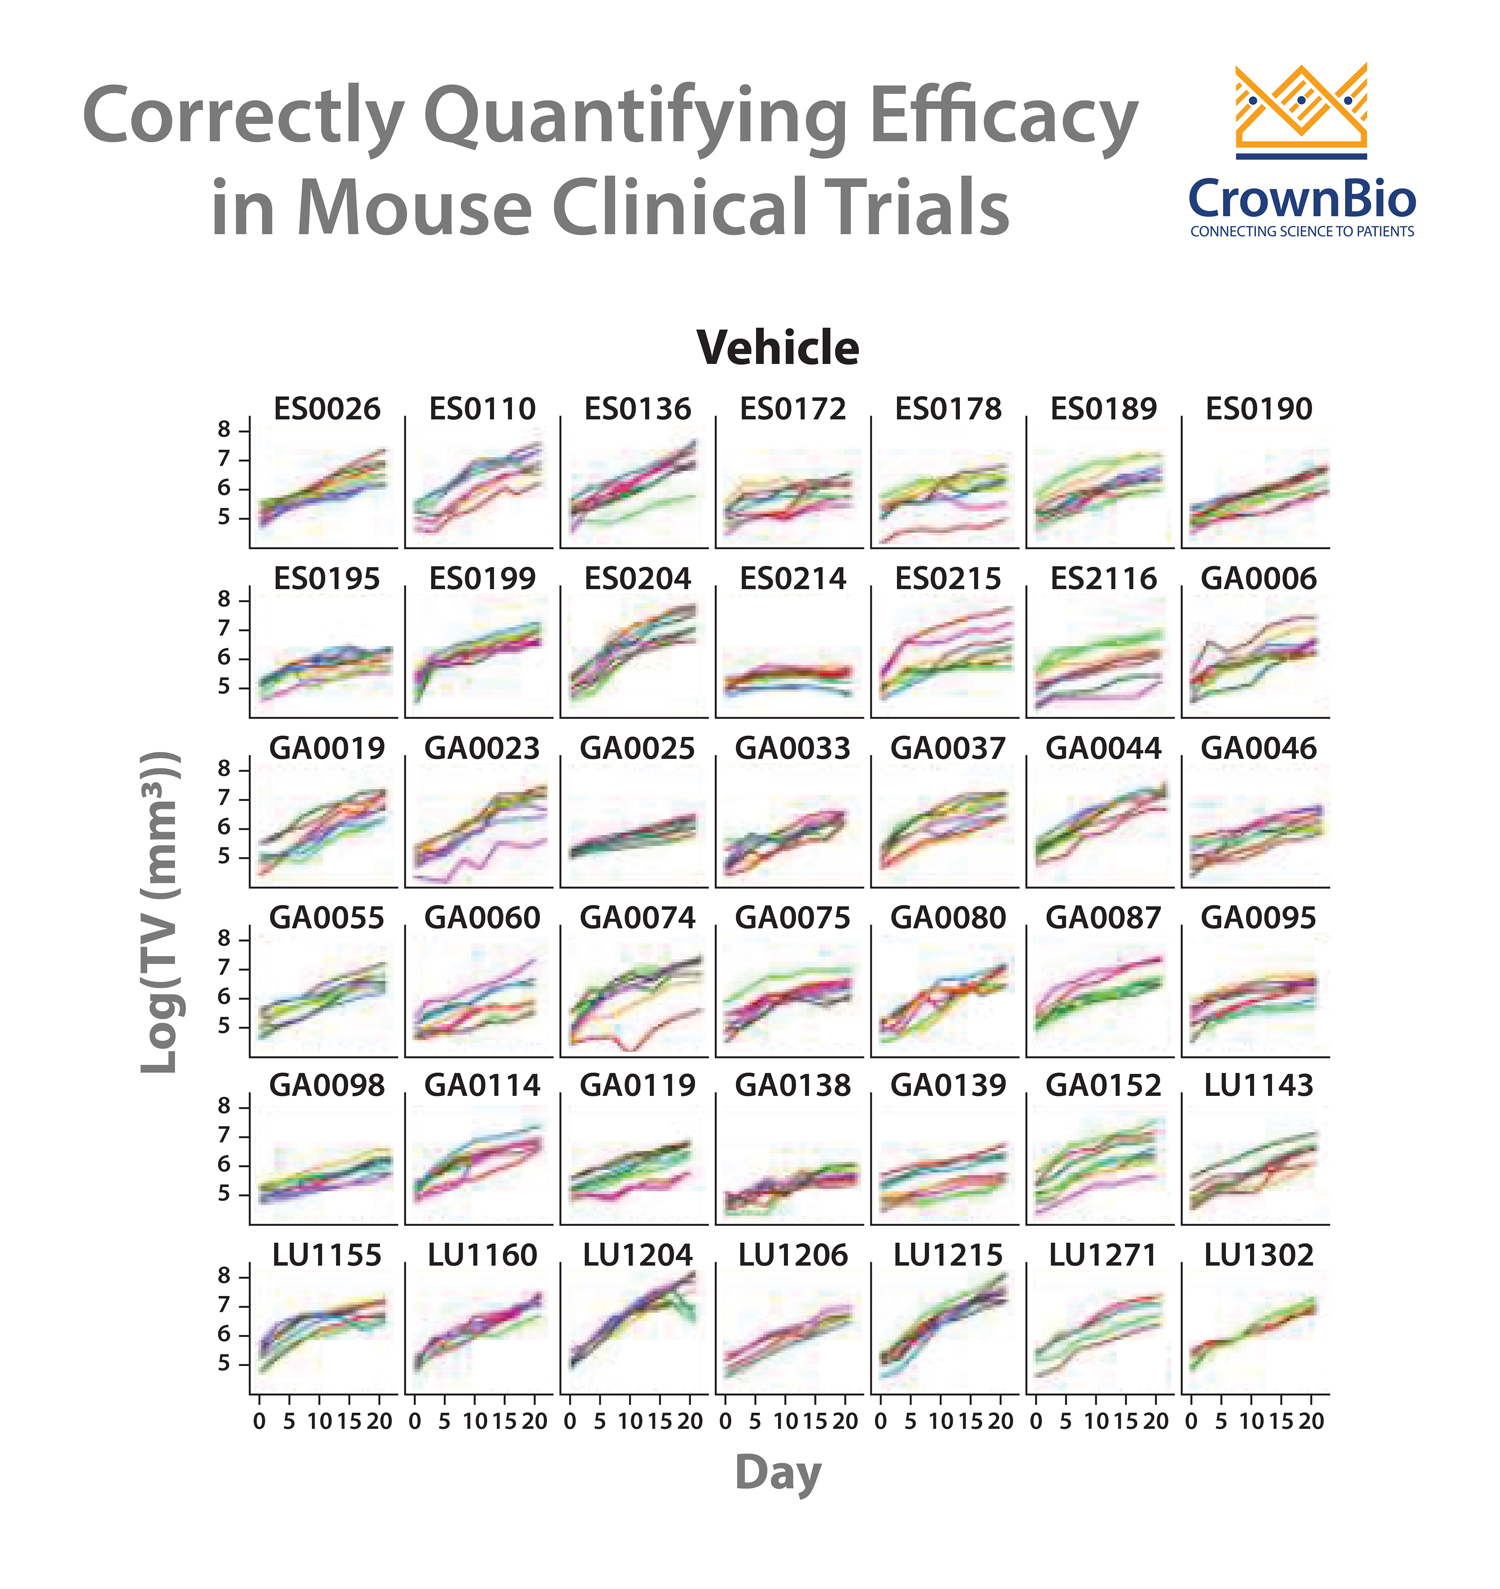 How to Quantify Drug Efficacy and Effects in Mouse Clinical Trials